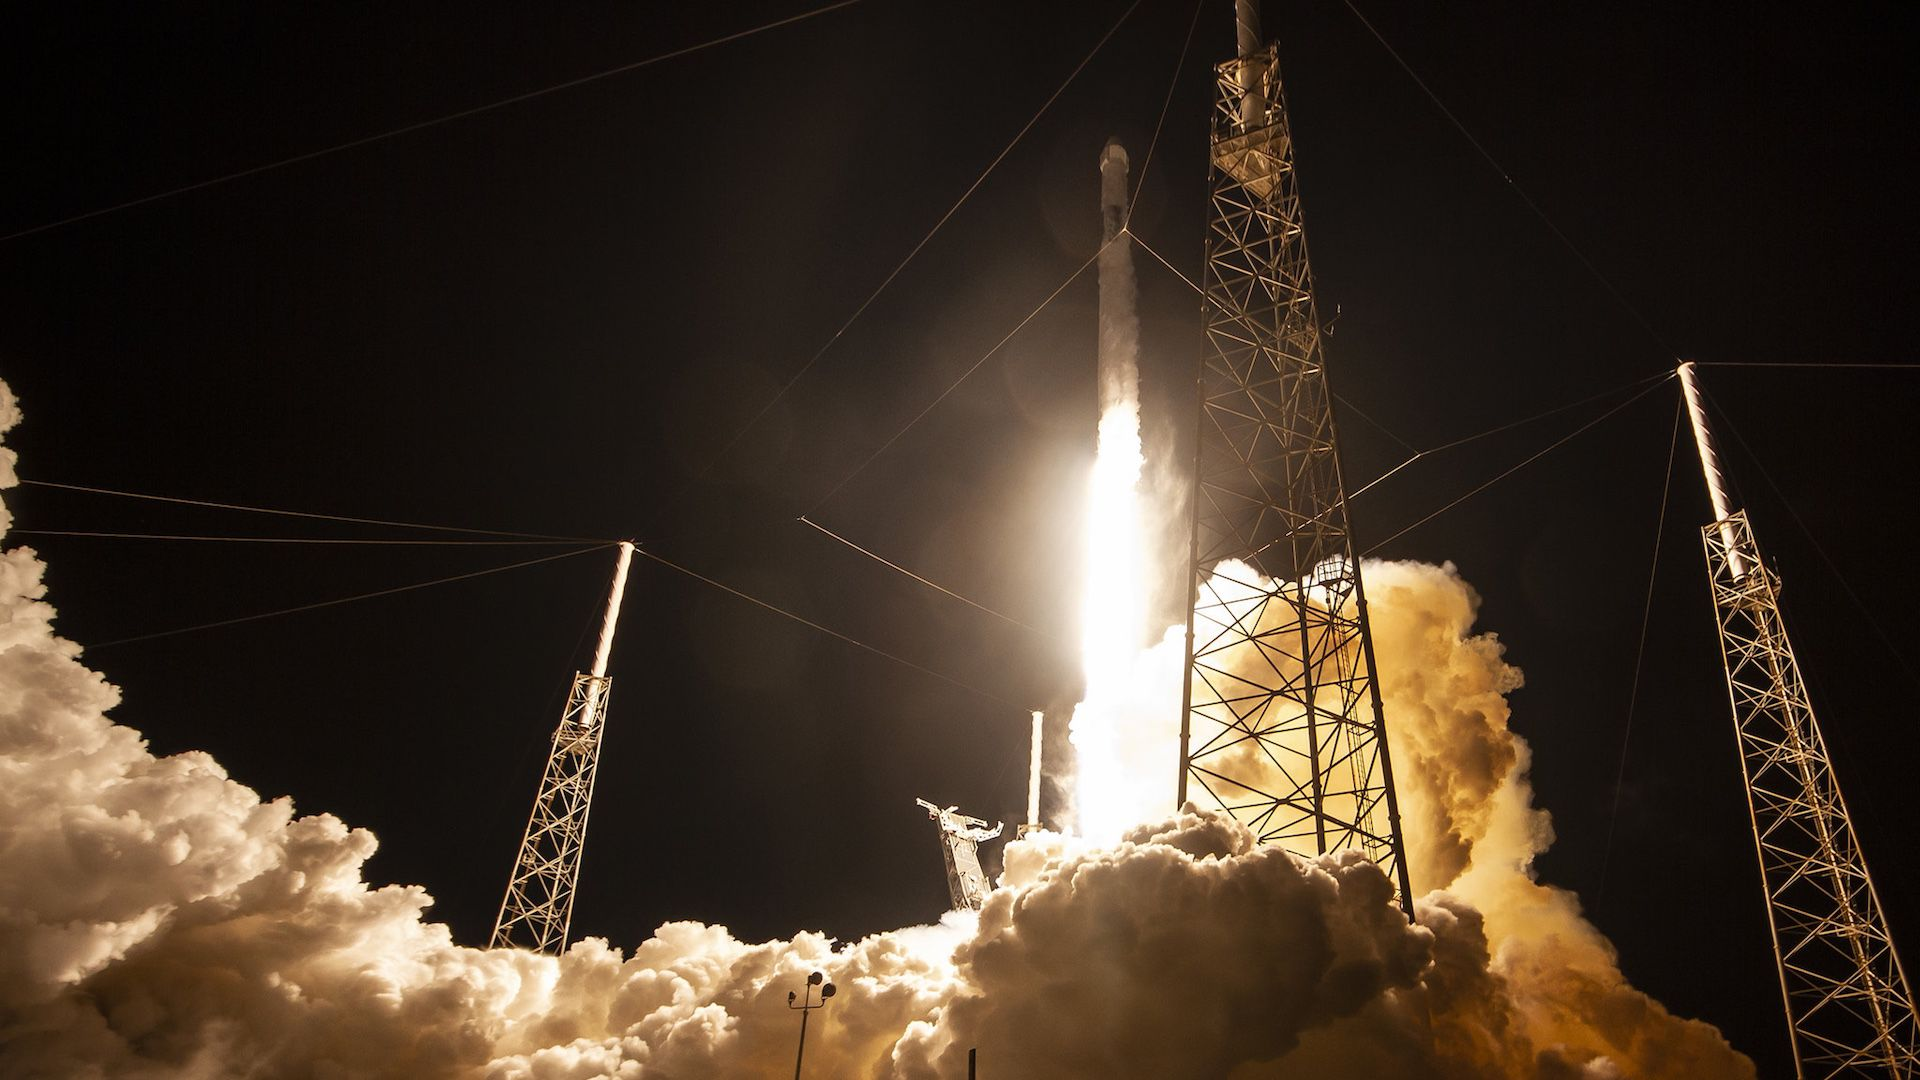 Elon Musk's SpaceX just launched 60 internet-beaming satellites to space